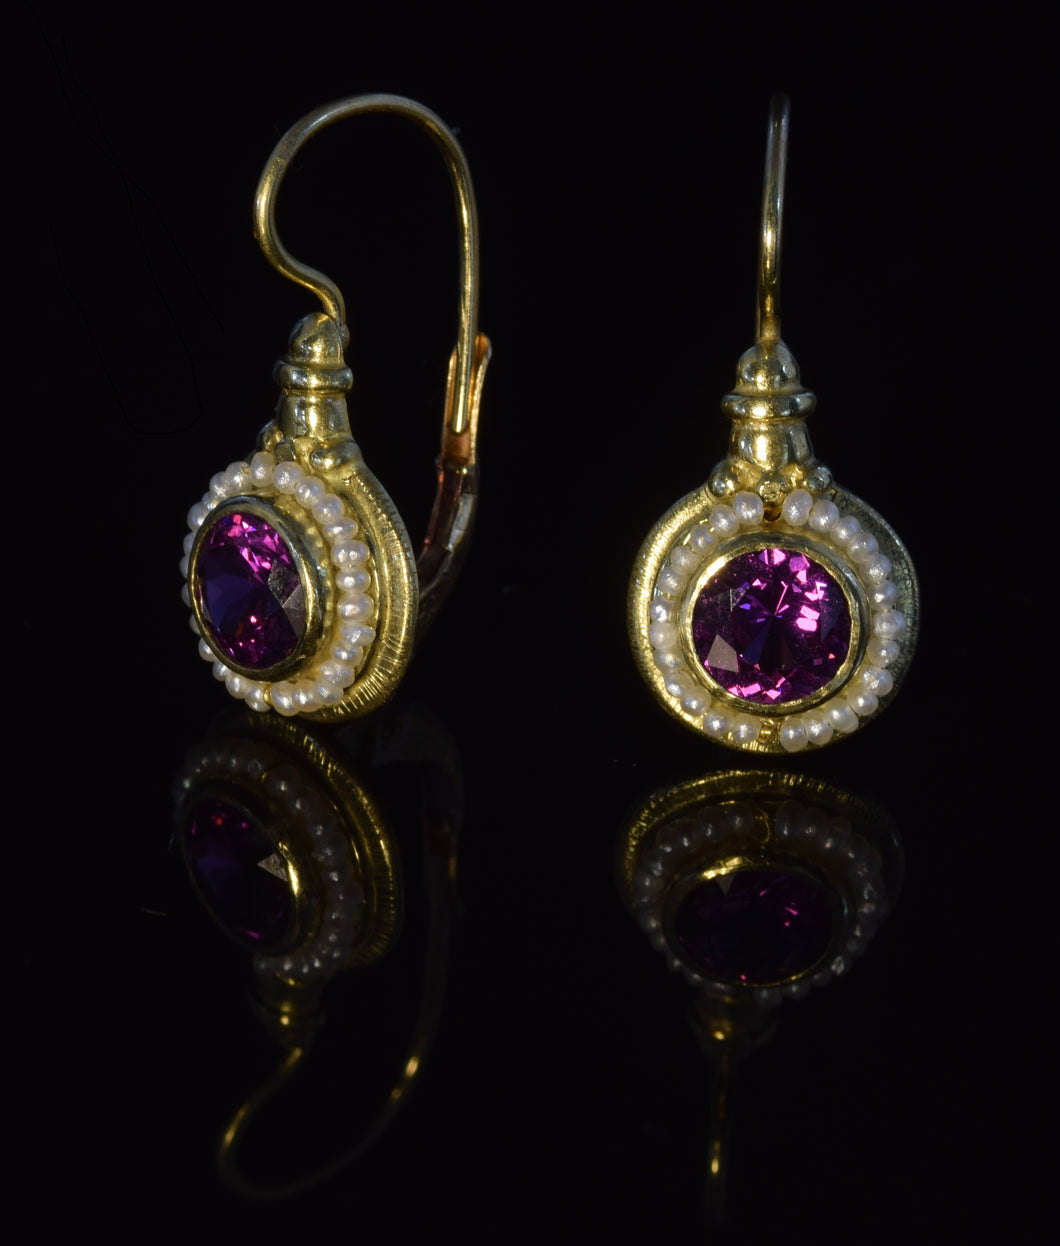 18K yellow gold 6 1/2 mm faceted rhodolite garnet French hook earrings with seed pearls